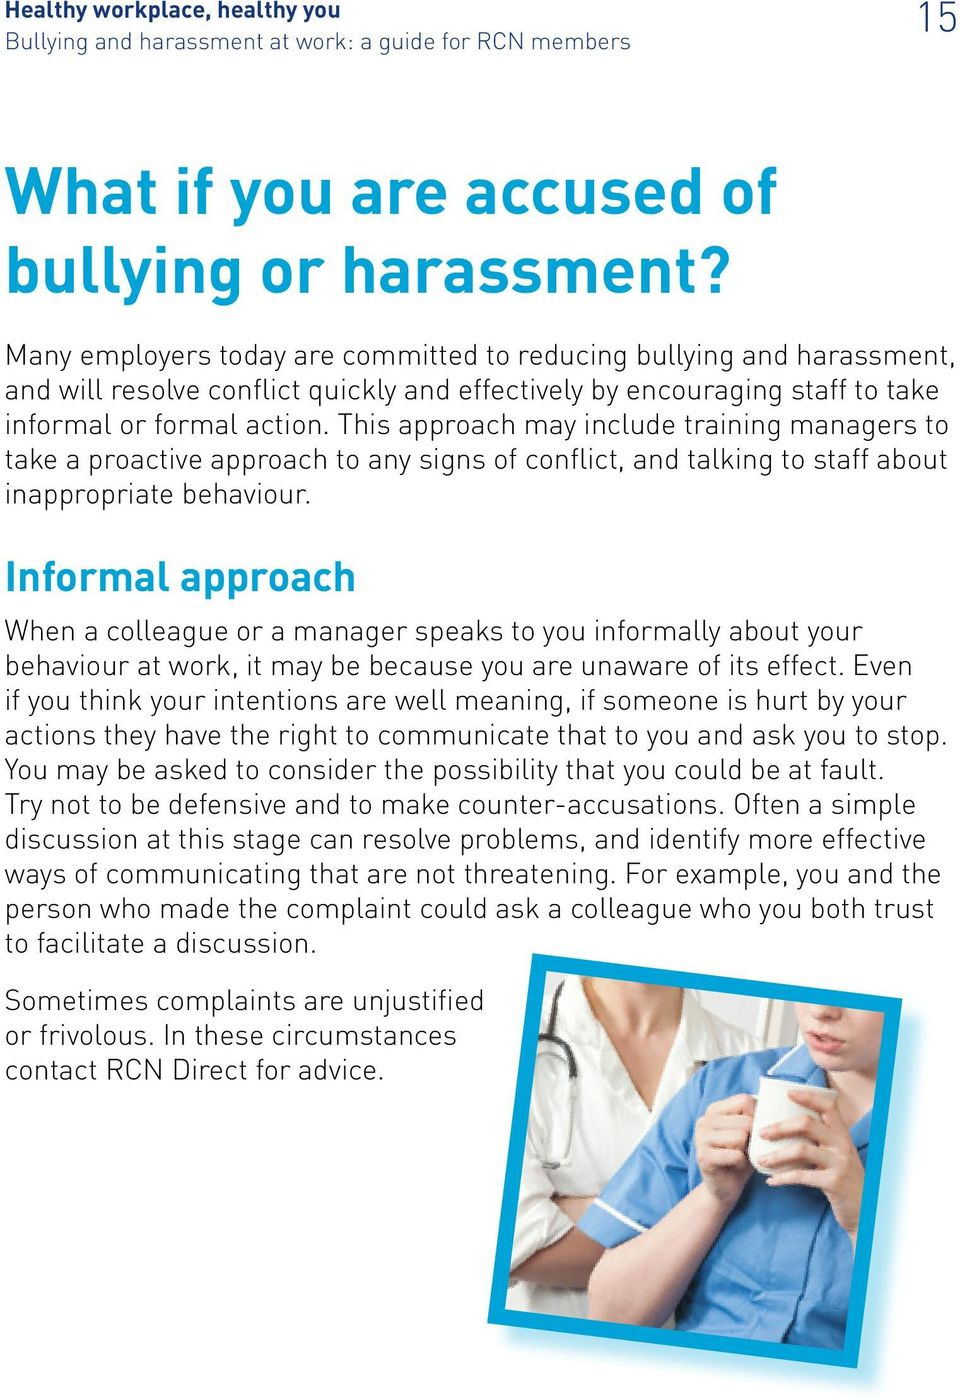 This approach may include training managers to take a proactive approach to any signs of conflict, and talking to staff about inappropriate behaviour.